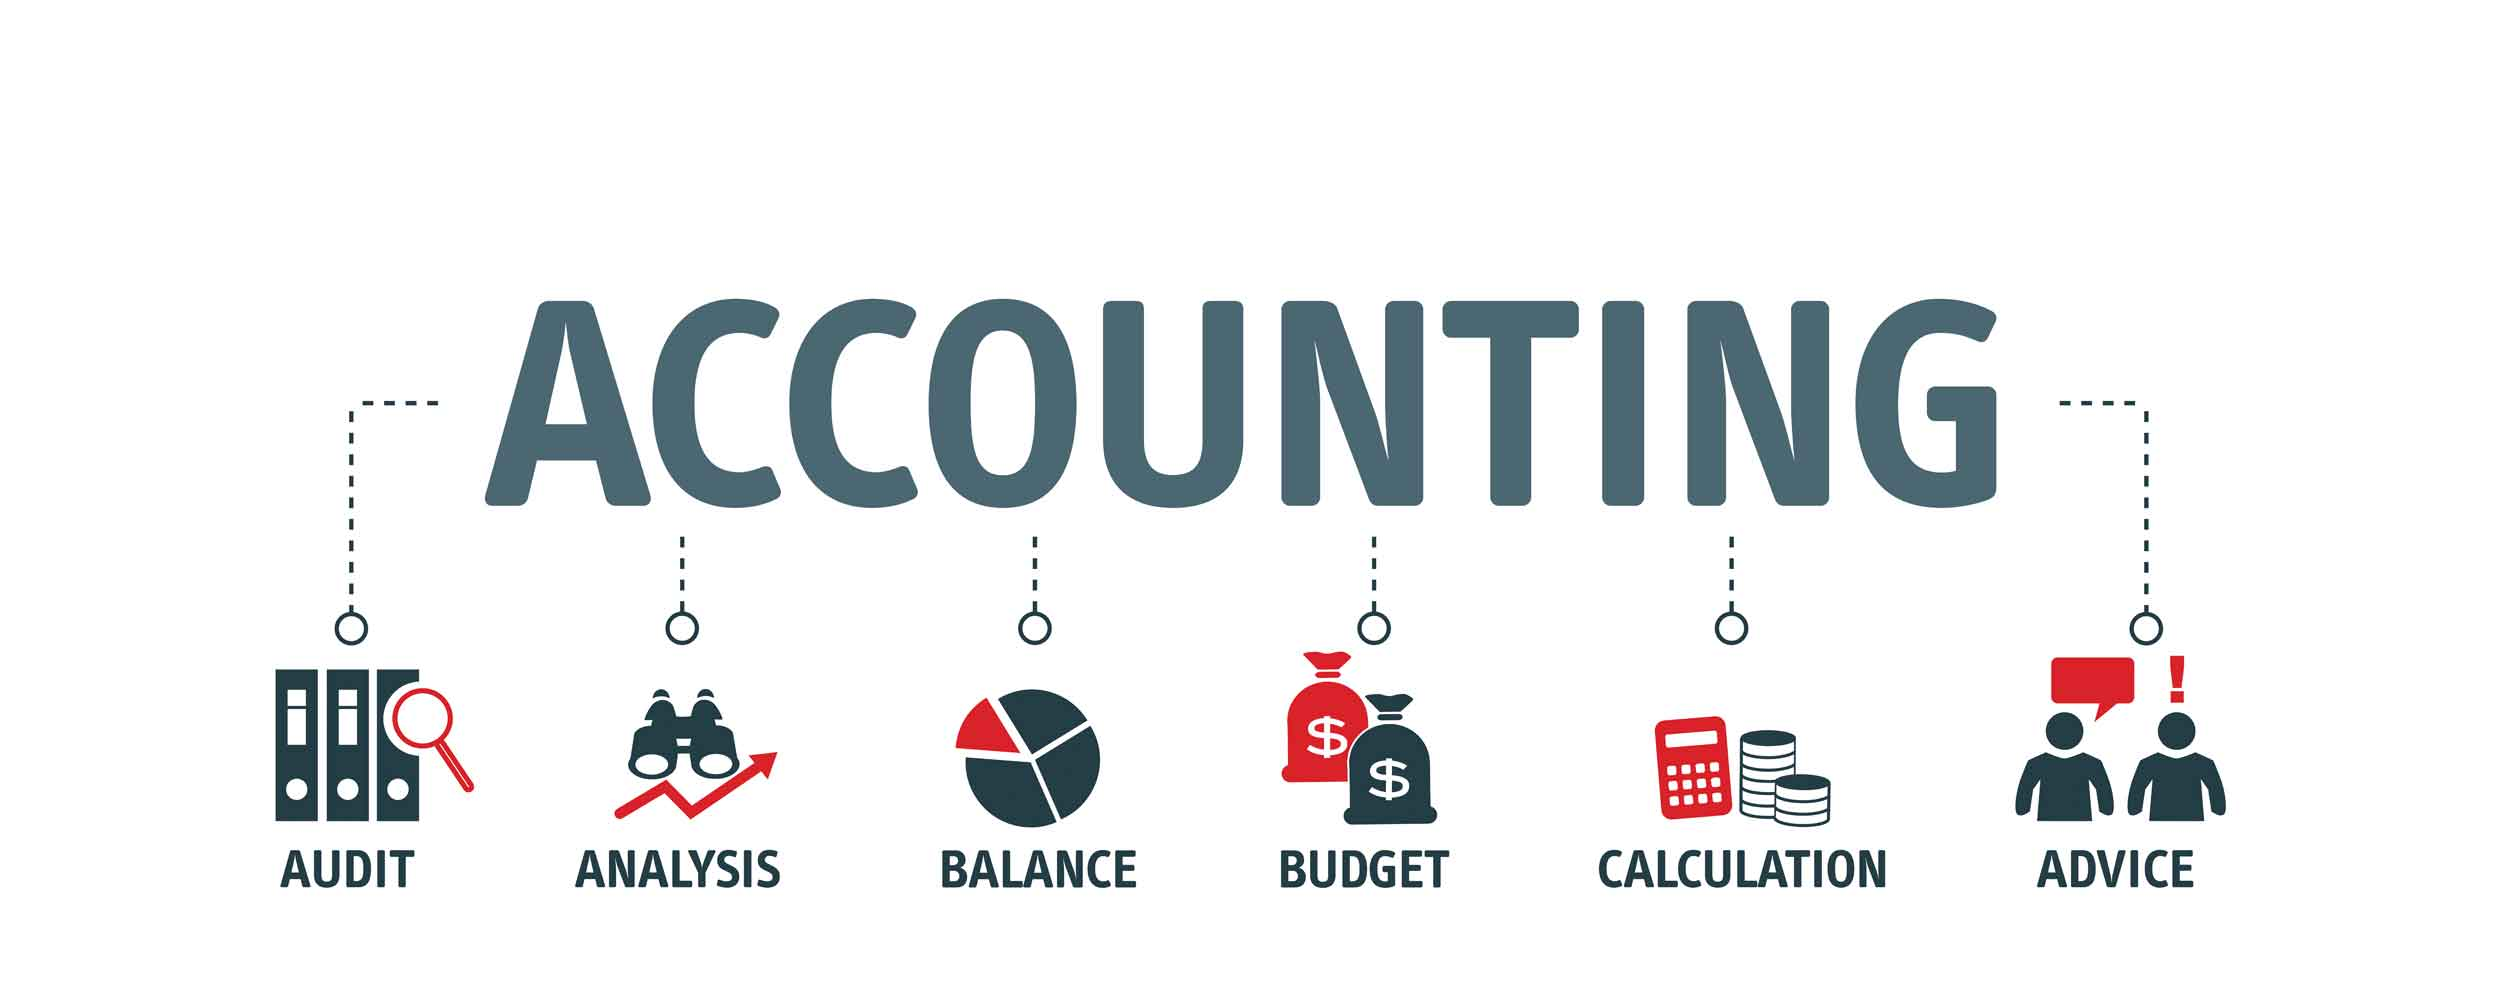 Mobile Accounting graphic with gray and red icons and the words audit, analysis, balance, budget, calculation and advice